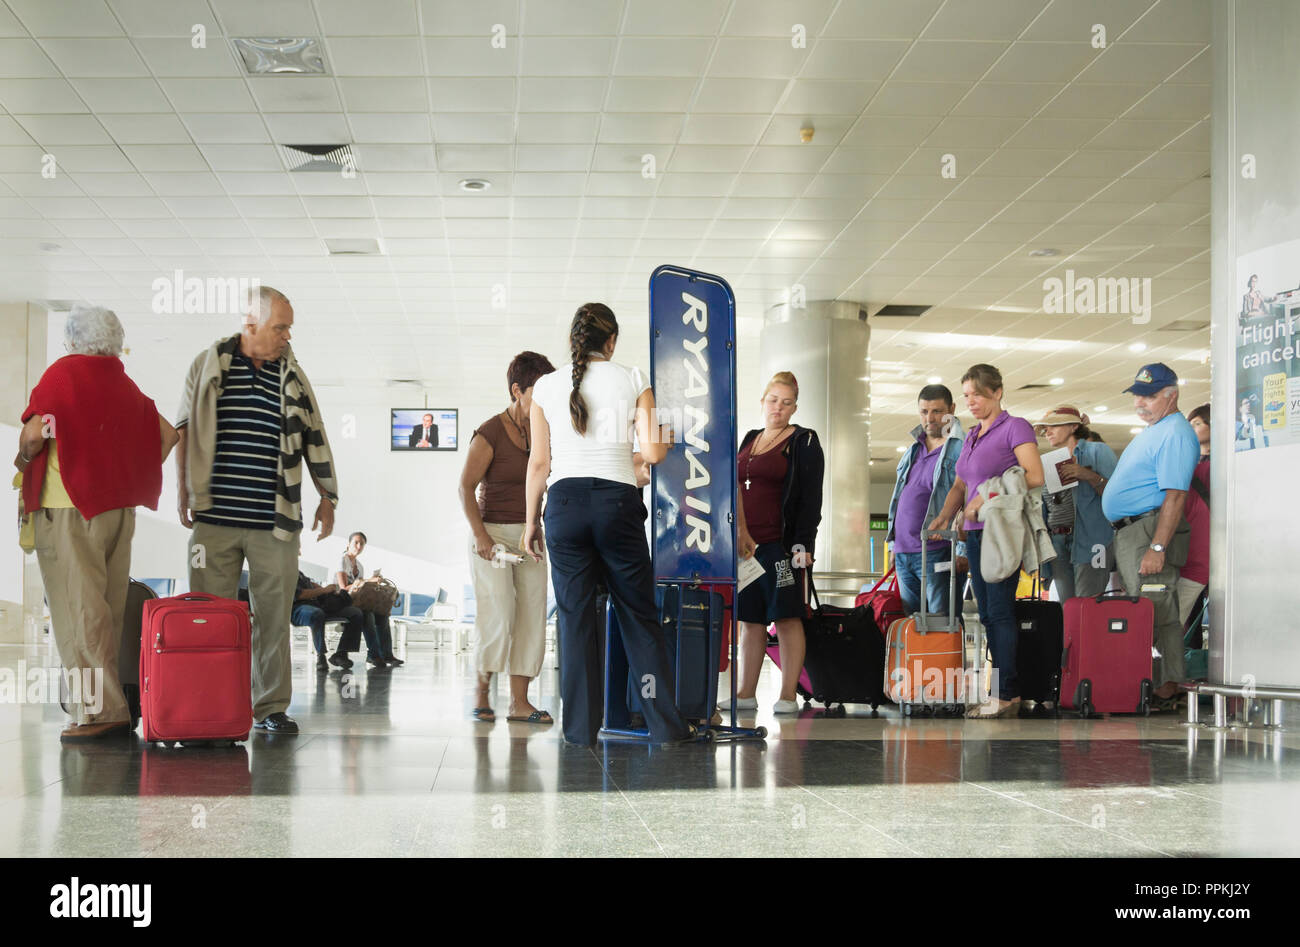 Ryanair worker checking hand luggage size prior to boarding. - Stock Image